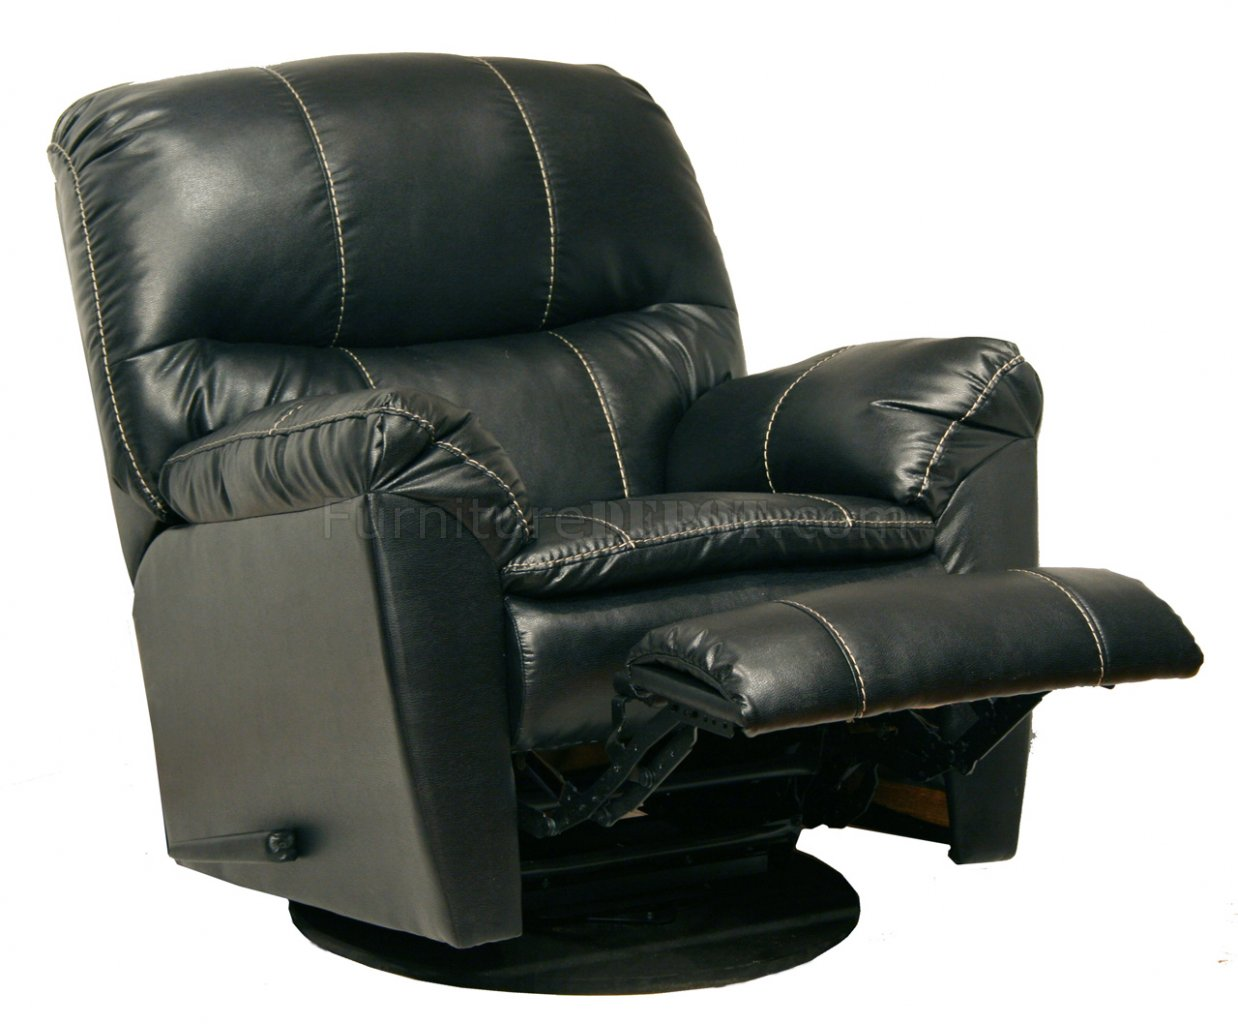 modern black leather recliner chair cordaroys bean bag chairs touch cosmo swivel glider